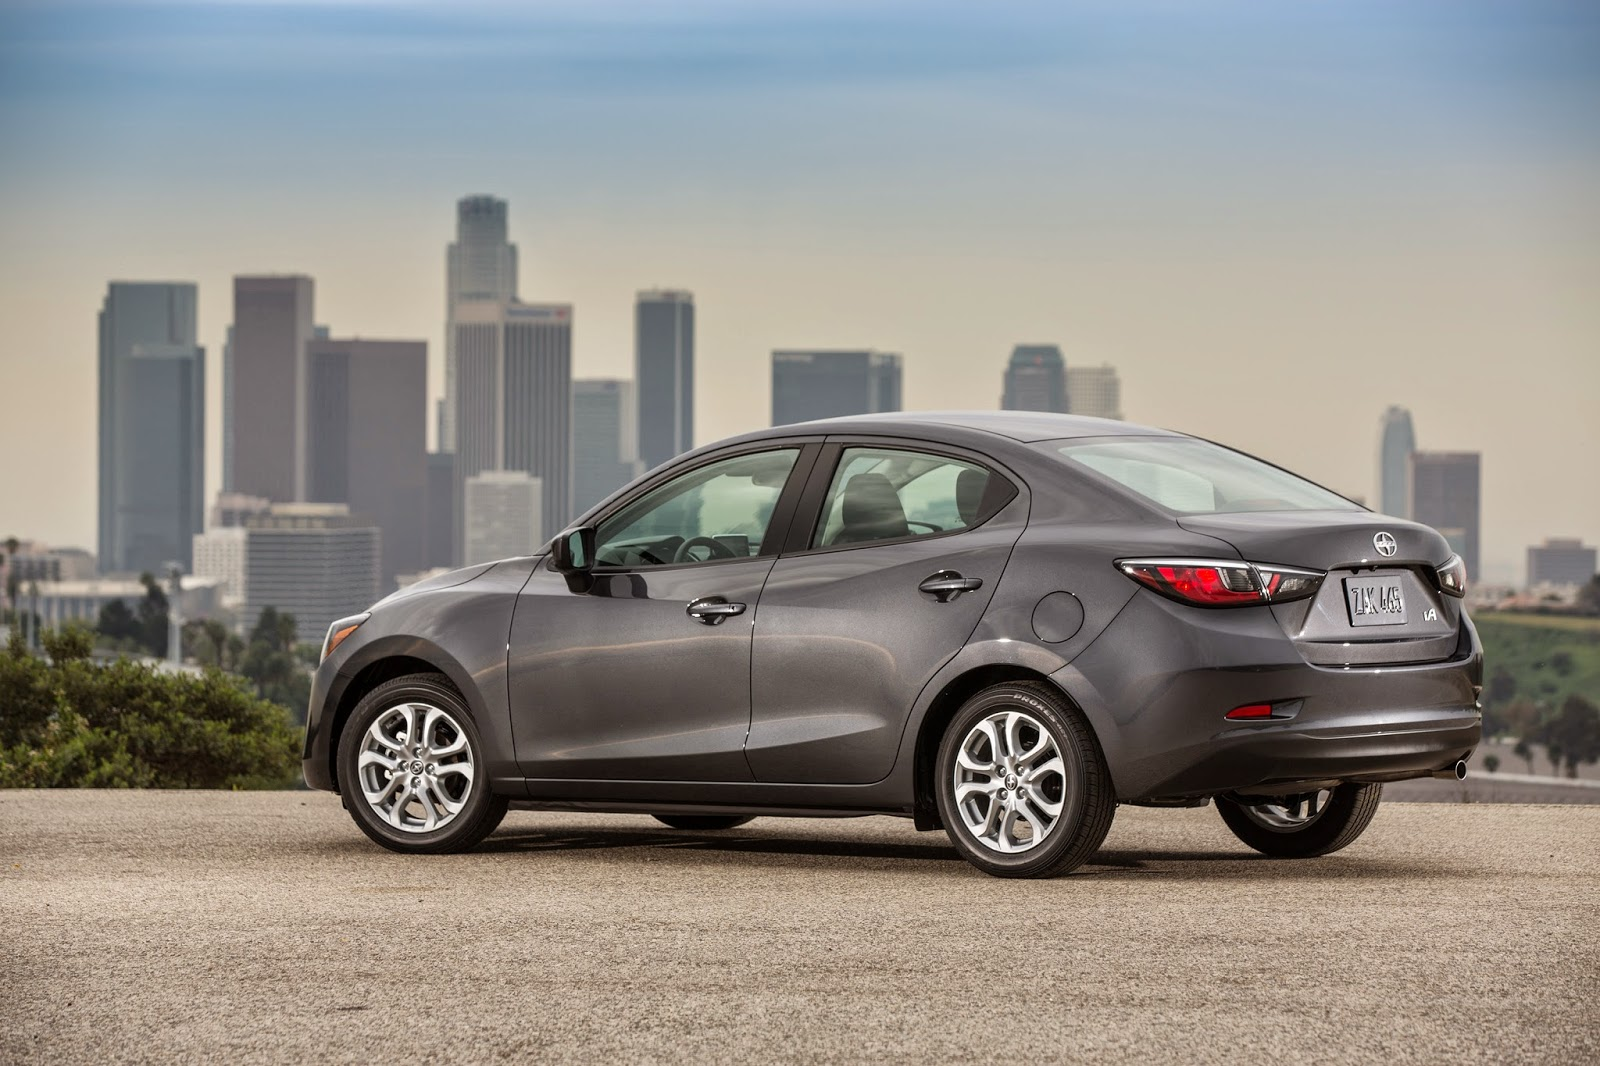 2016 Scion iA rear